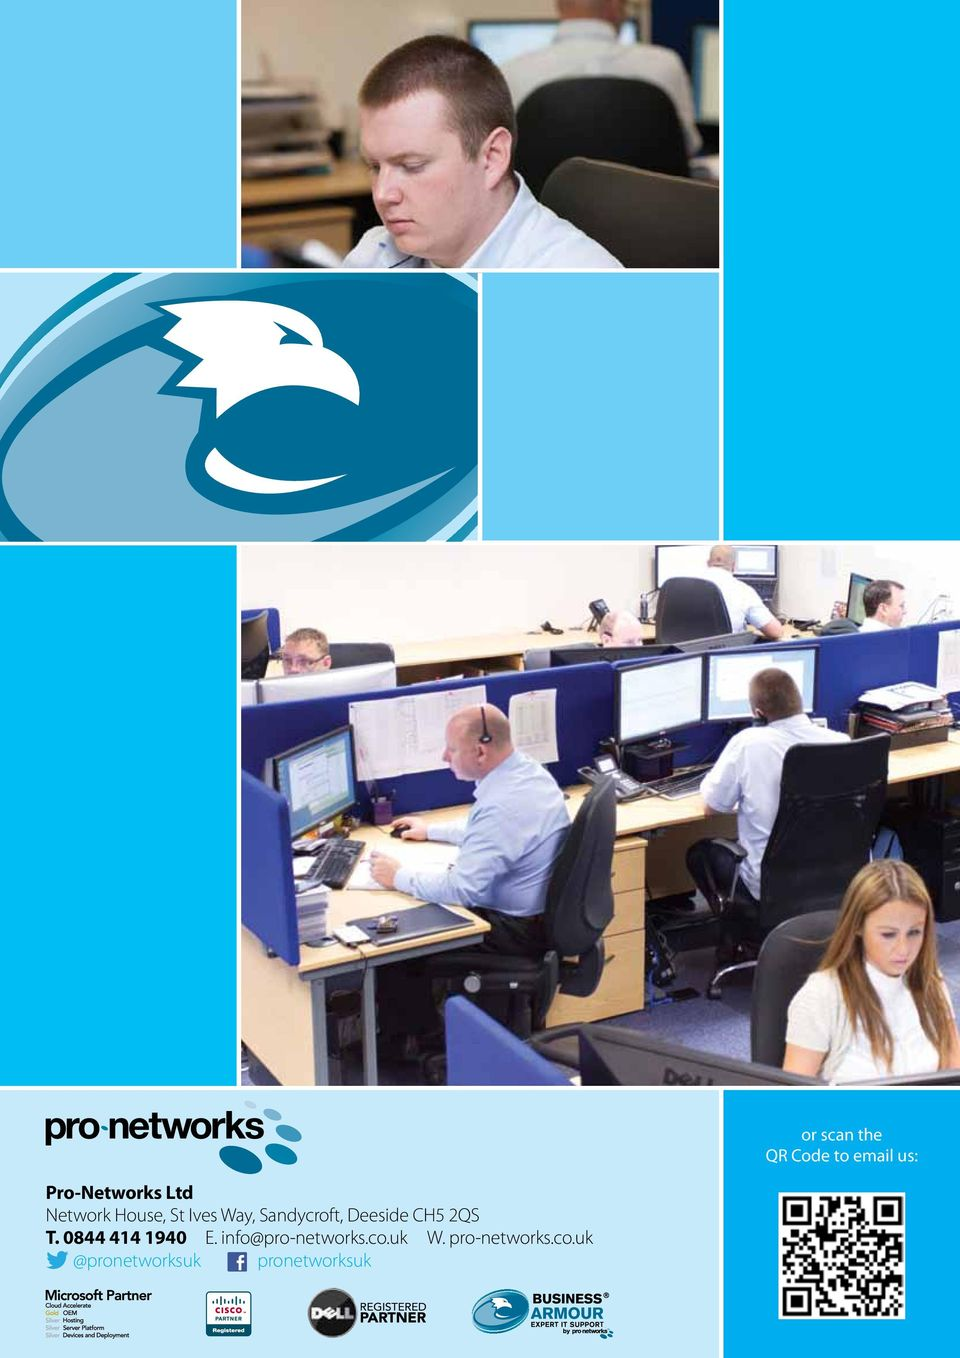 pro-networks.co.uk @pronetworksuk pronetworksuk t : 0844 414 1940 w : www.pro- networks.